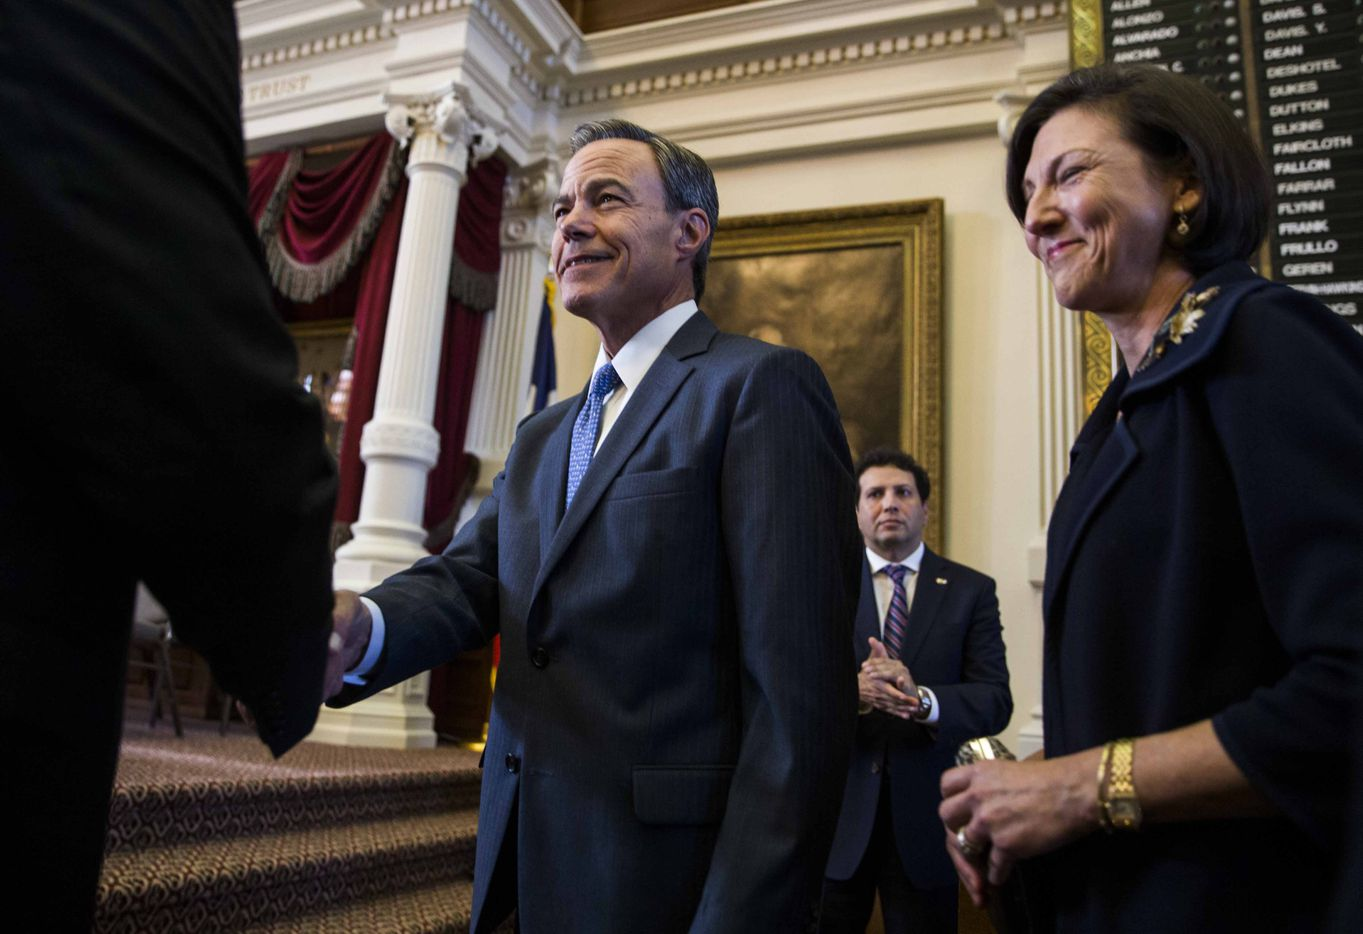 Texas State Rep. Joe Straus and his wife, Julie Brink, take the stage after Straus was elected as Speaker of the House during the first day of the 85th Texas Legislative Session on Tuesday at the Texas State Capitol in Austin.